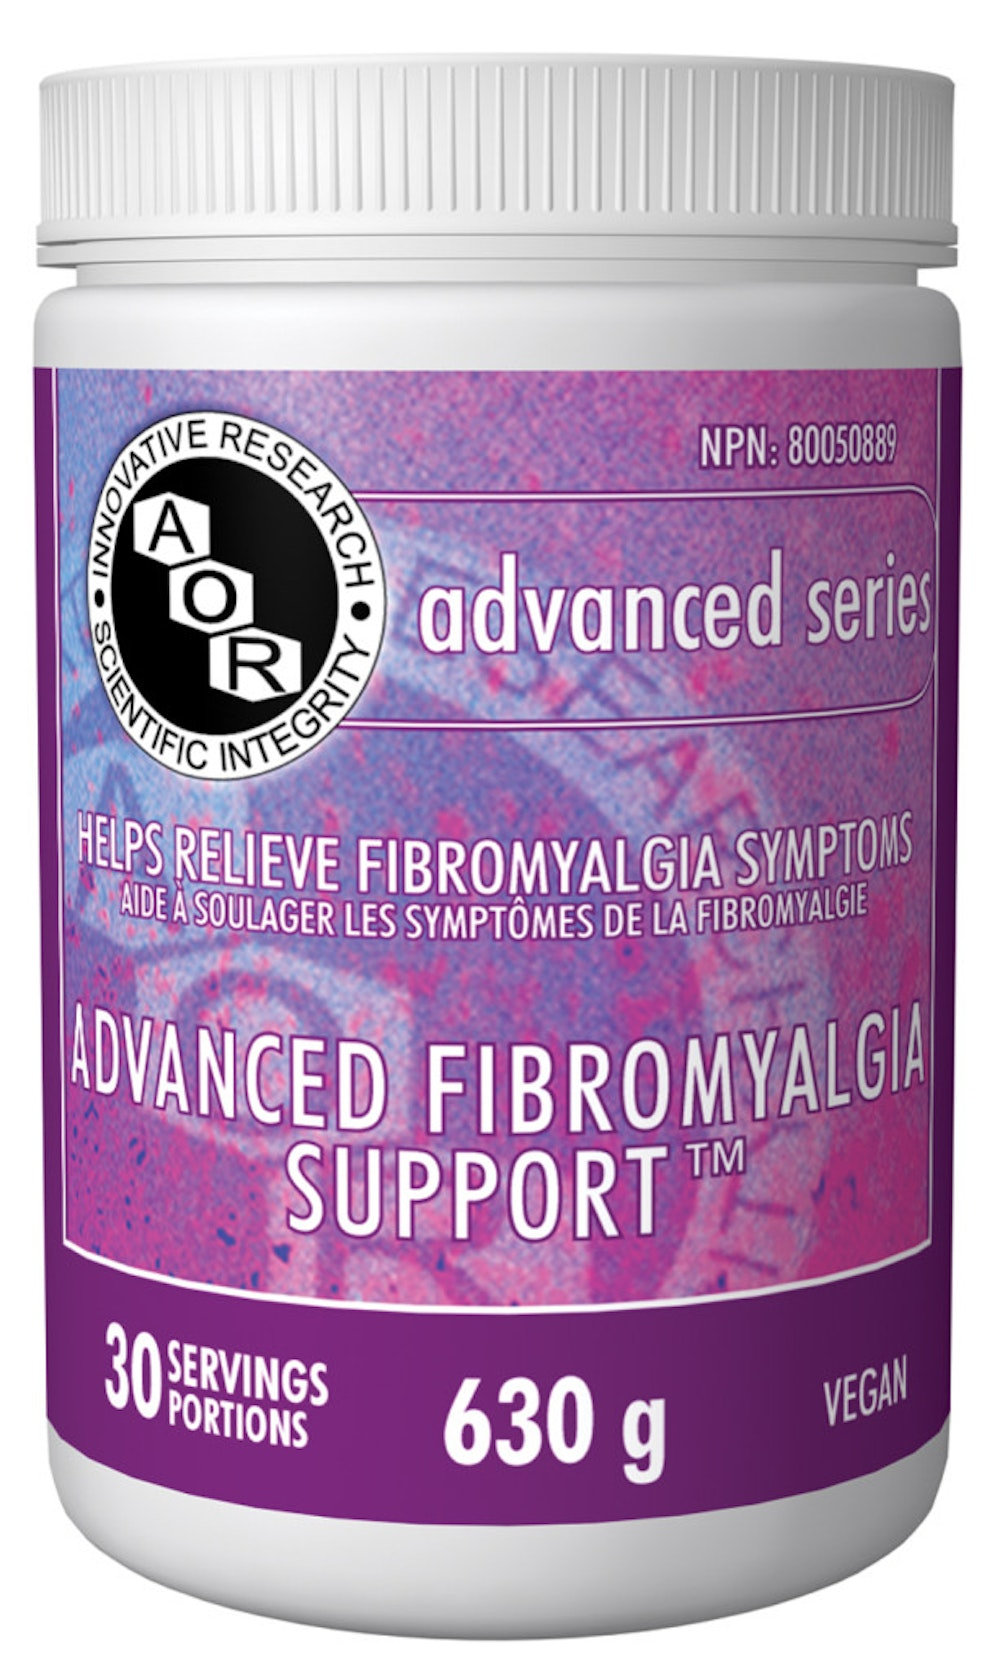 Advanced Fibromyalgia Support